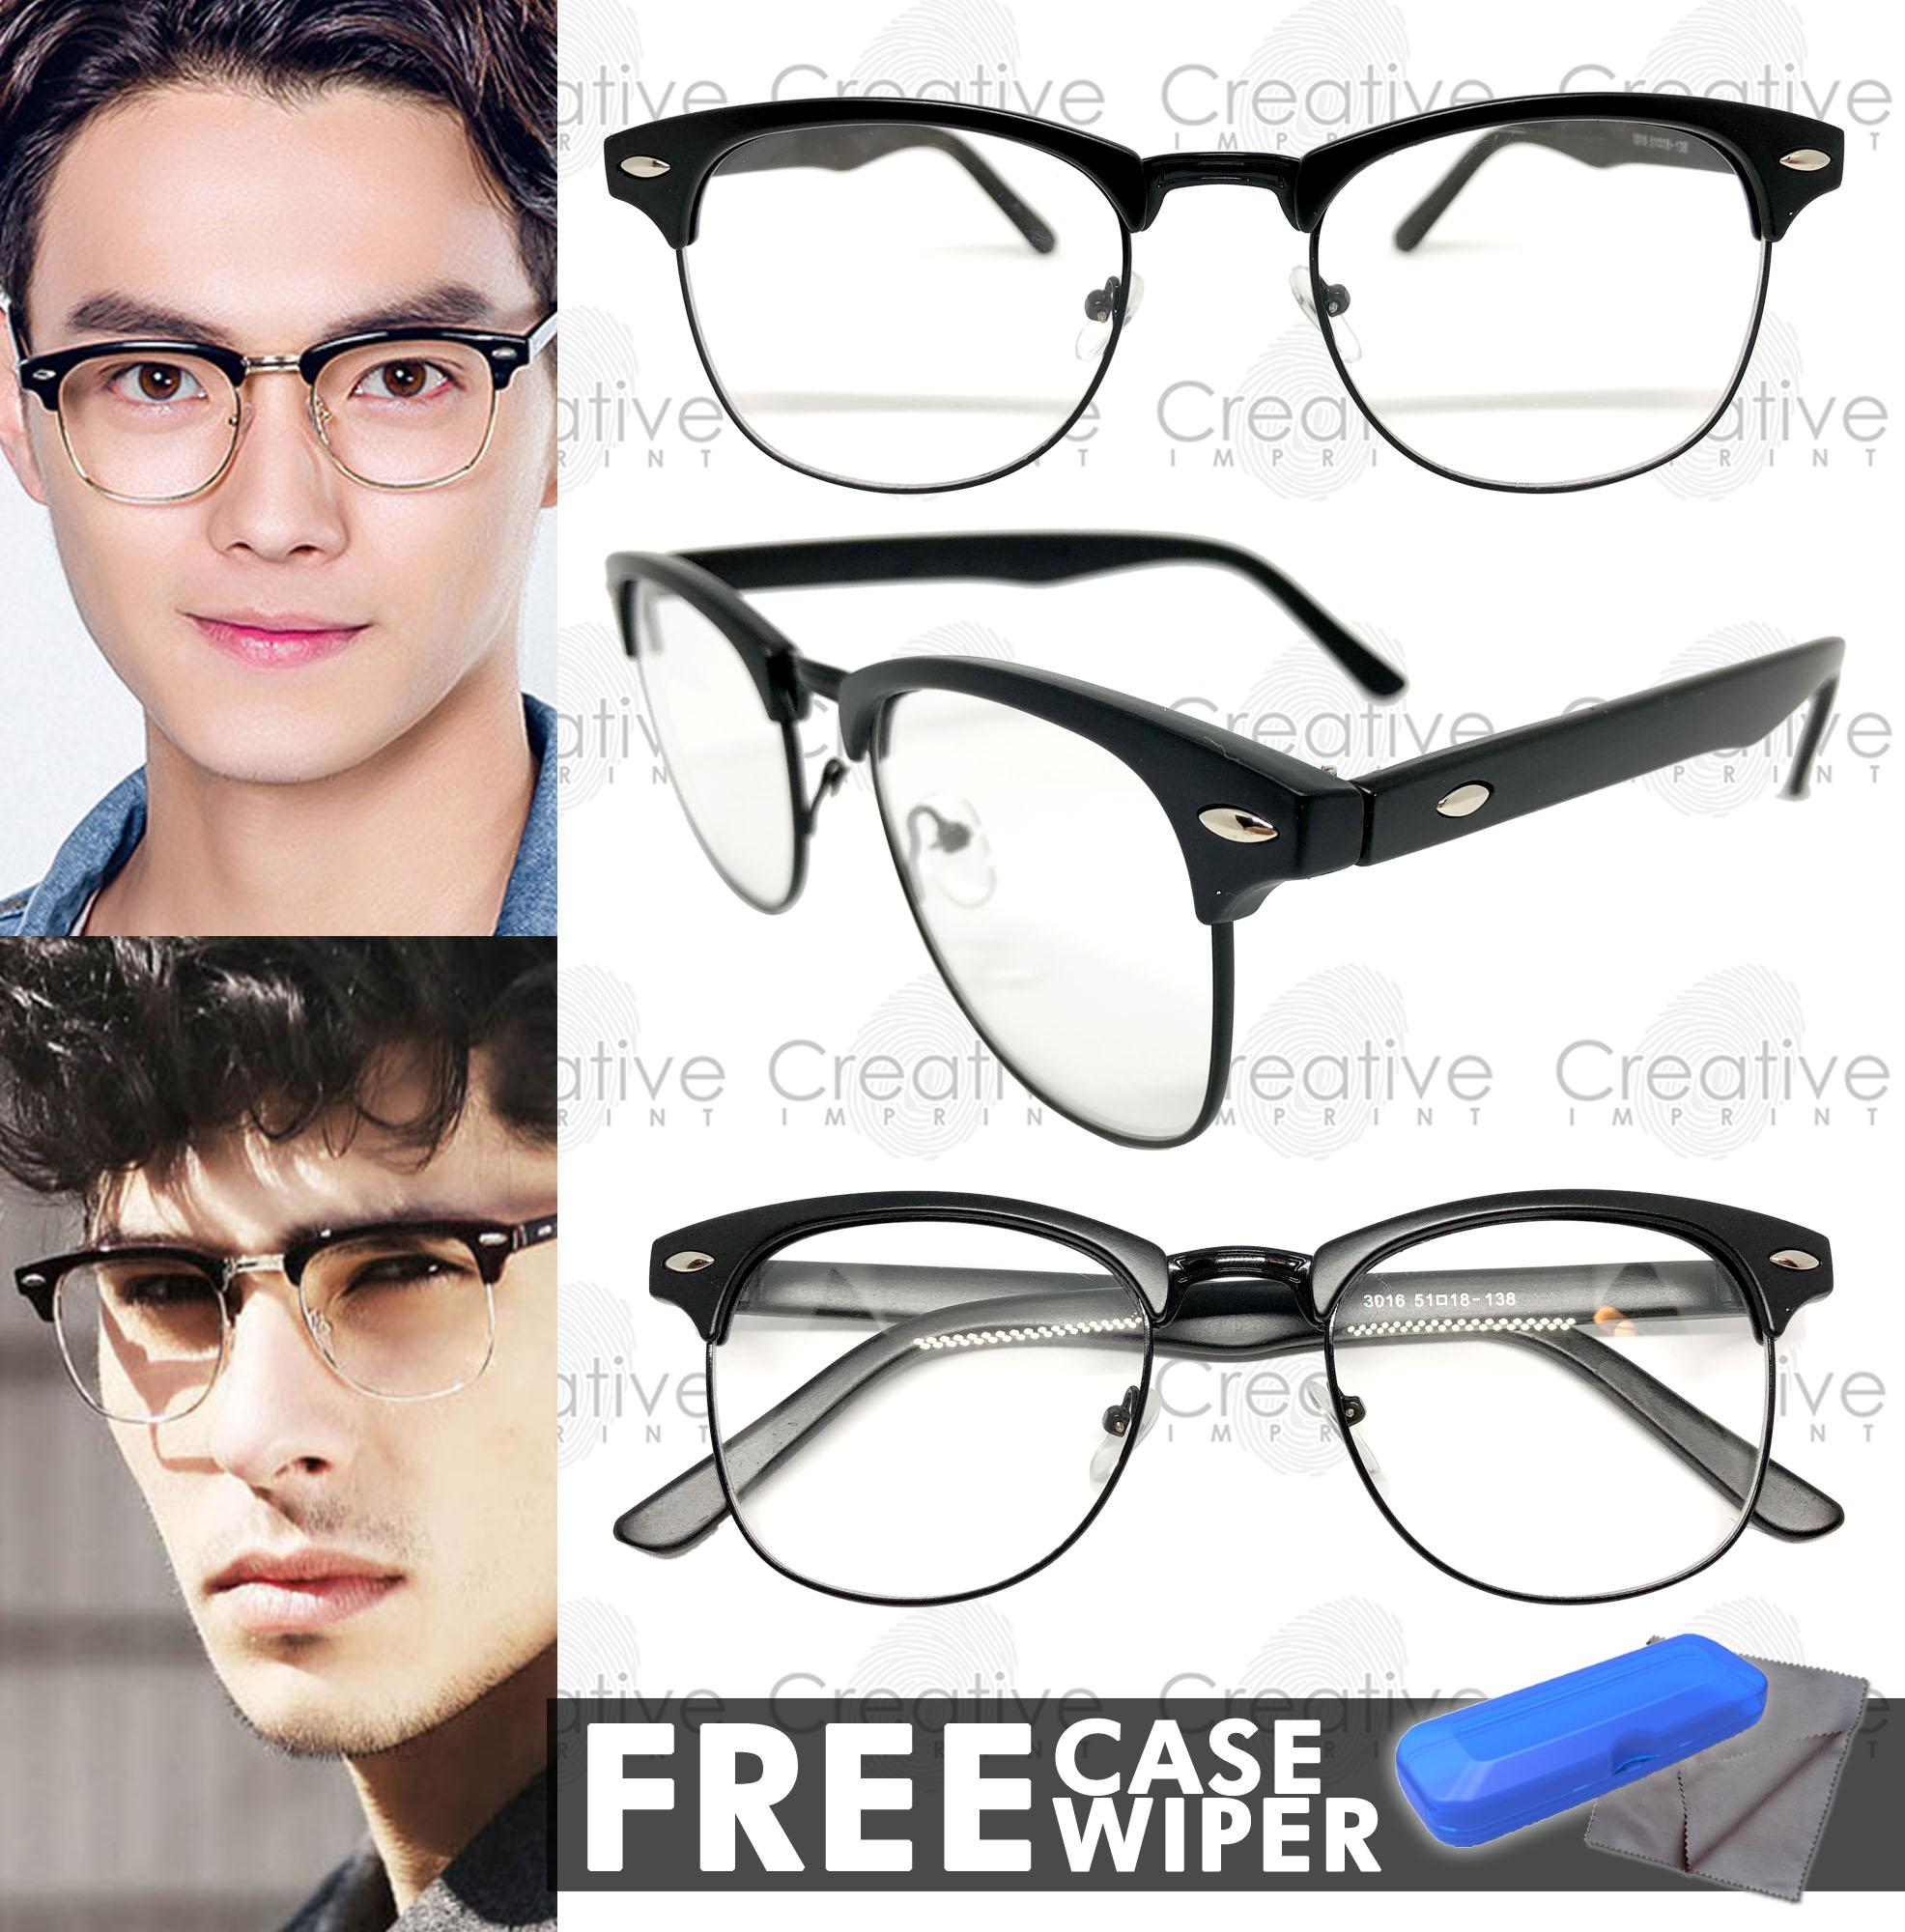 1afc106ca46 Creative Imprint Eyeglasses Replaceable Lens Clubmaster  01 Premium High  Quality Specs Metal Korean Style Computer